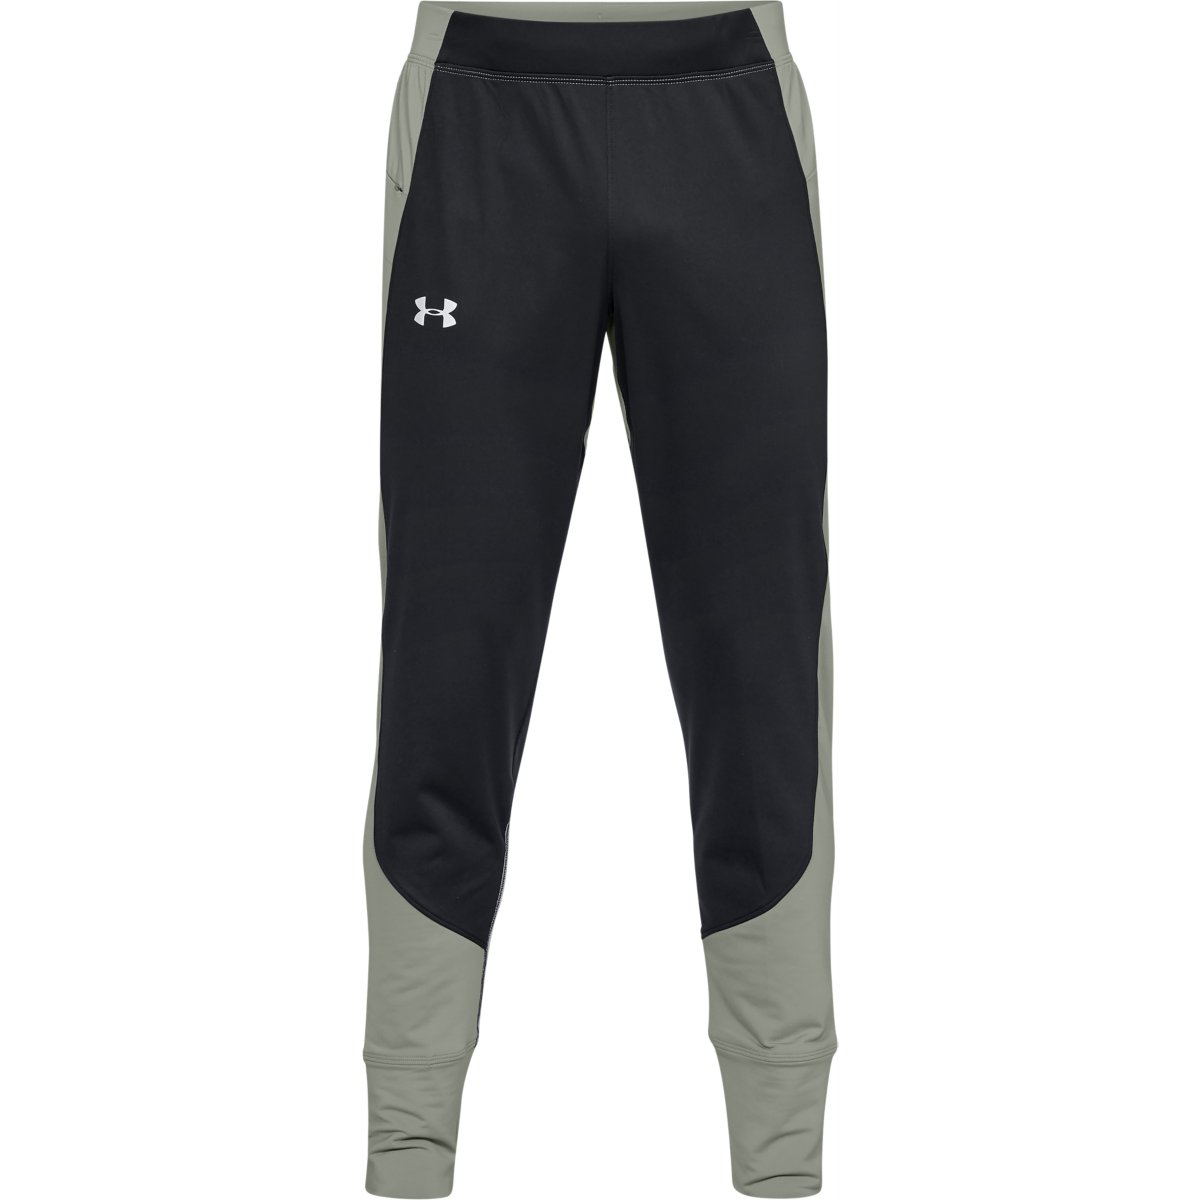 competitive price 9961f 44392 wiggle.com.au   Under Armour ColdGear Reactor Run Pant   Tights